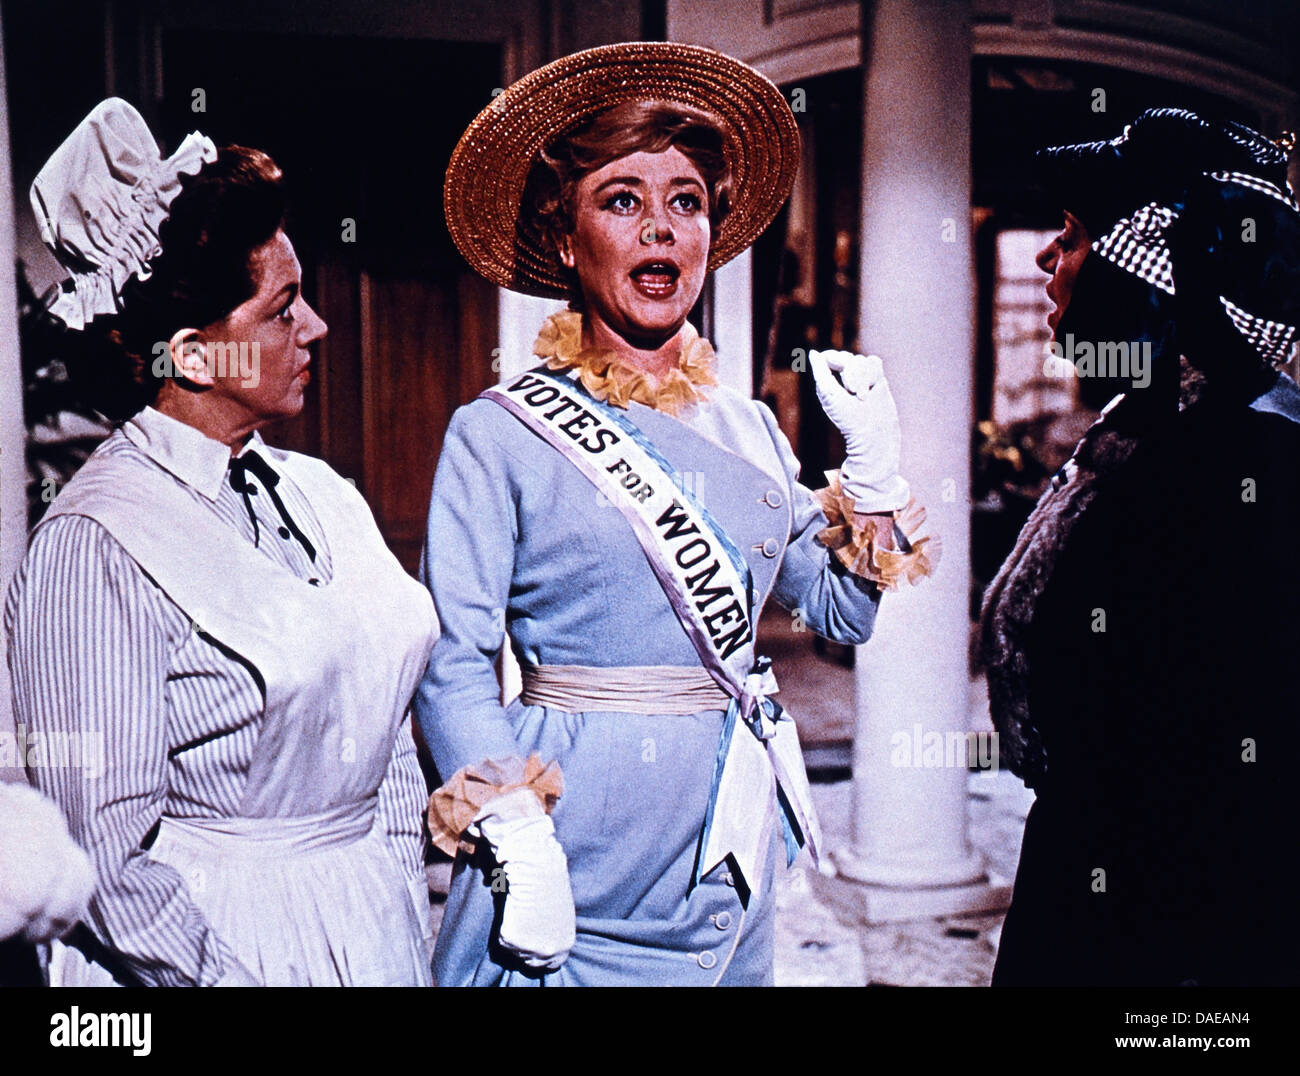 Glynis Johns (center with sash), on-set of the Film, 'Mary Poppins', Walt Disney Productions, Buena Vista - Stock Image